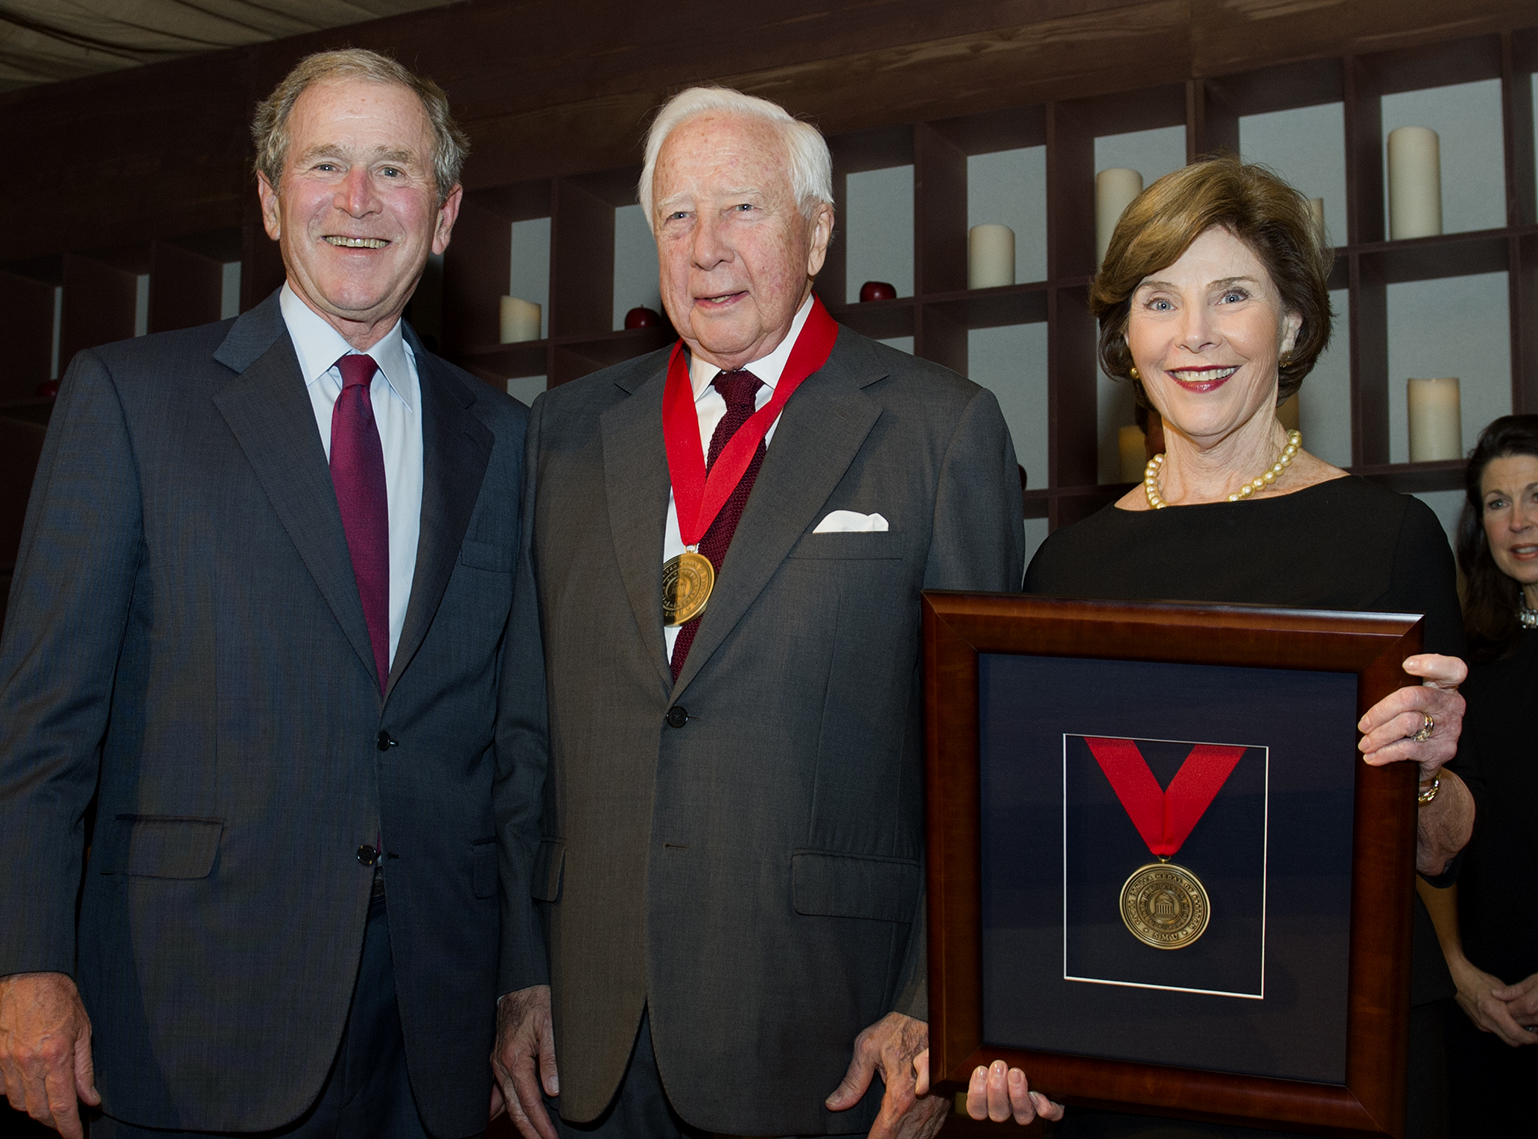 Historian David McCullough with President George Bush and Laura Bush